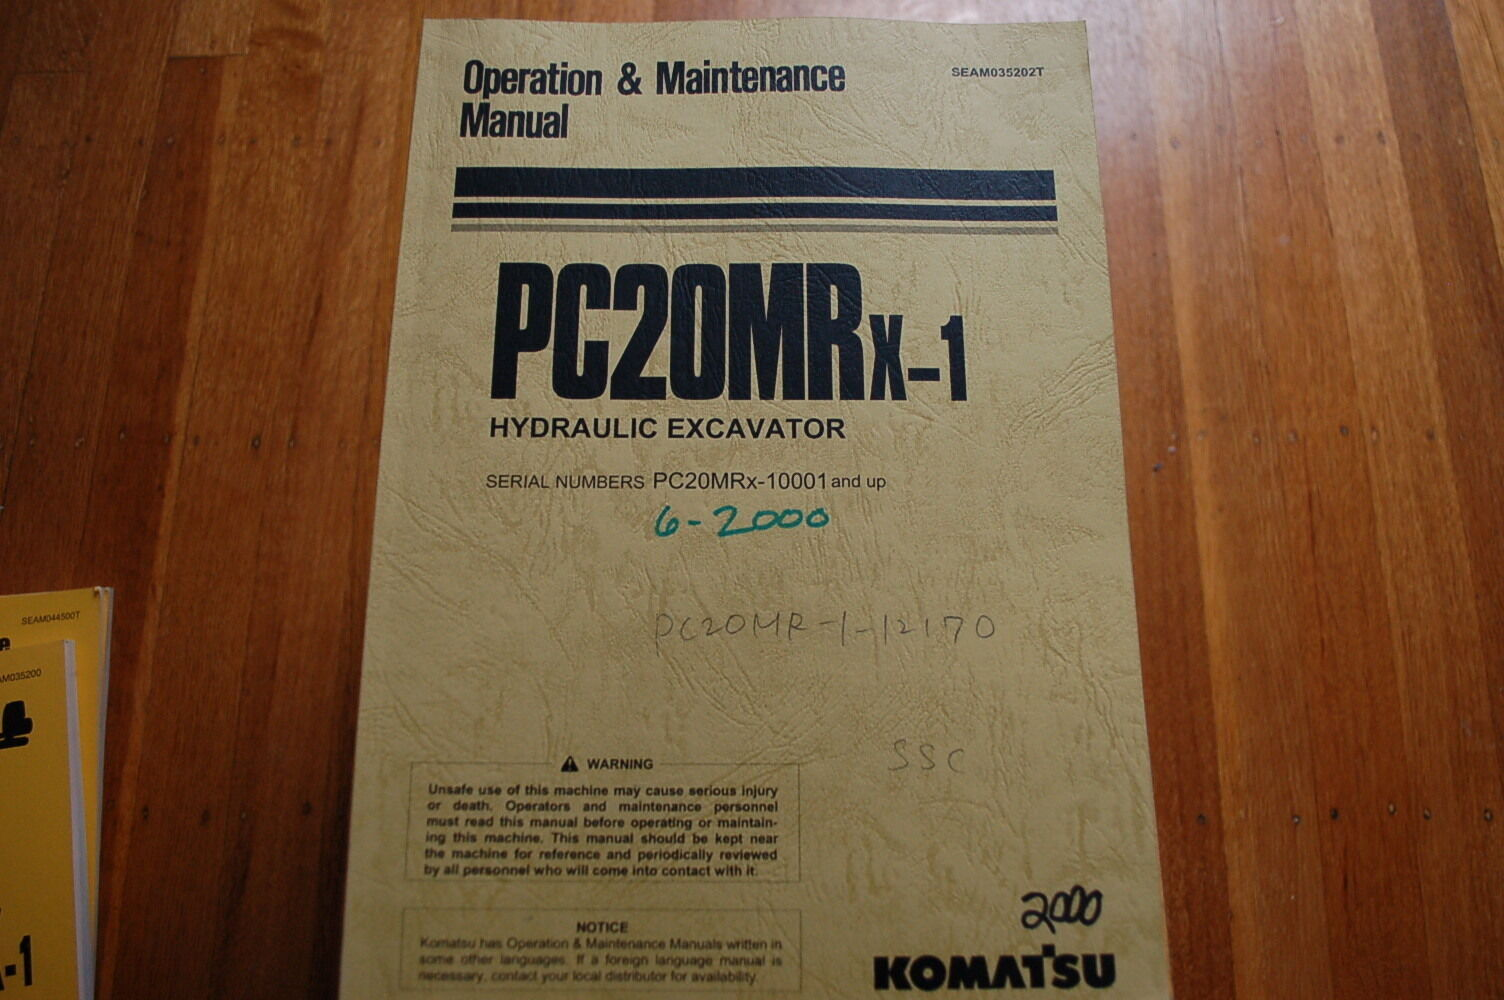 1 of 8Only 1 available KOMATSU PC20MRx-1 Crawler Excavator Owner Operator  Operation Maintenance Manual